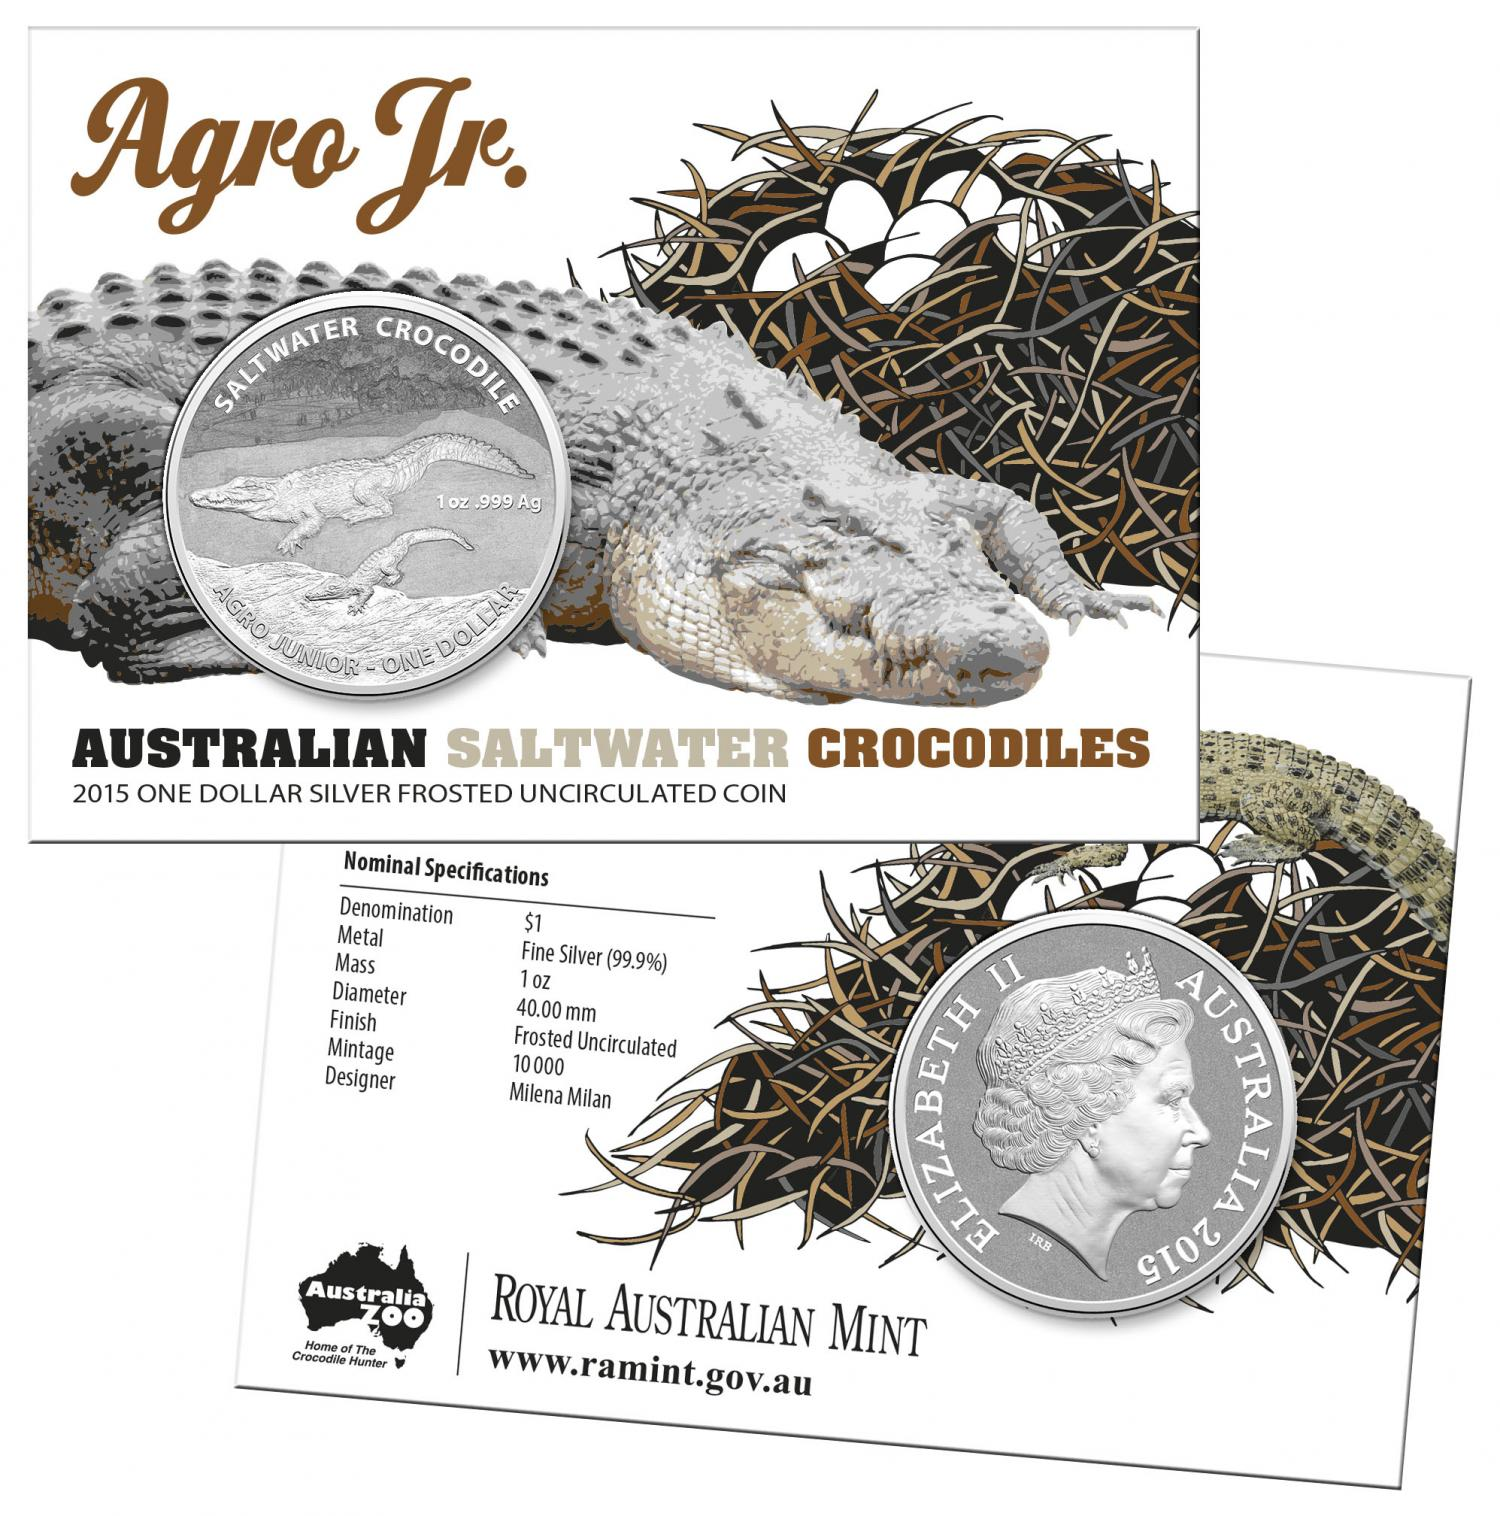 Thumbnail for 2015 Australian Silver 1oz Saltwater Crocodile - Agro Jr